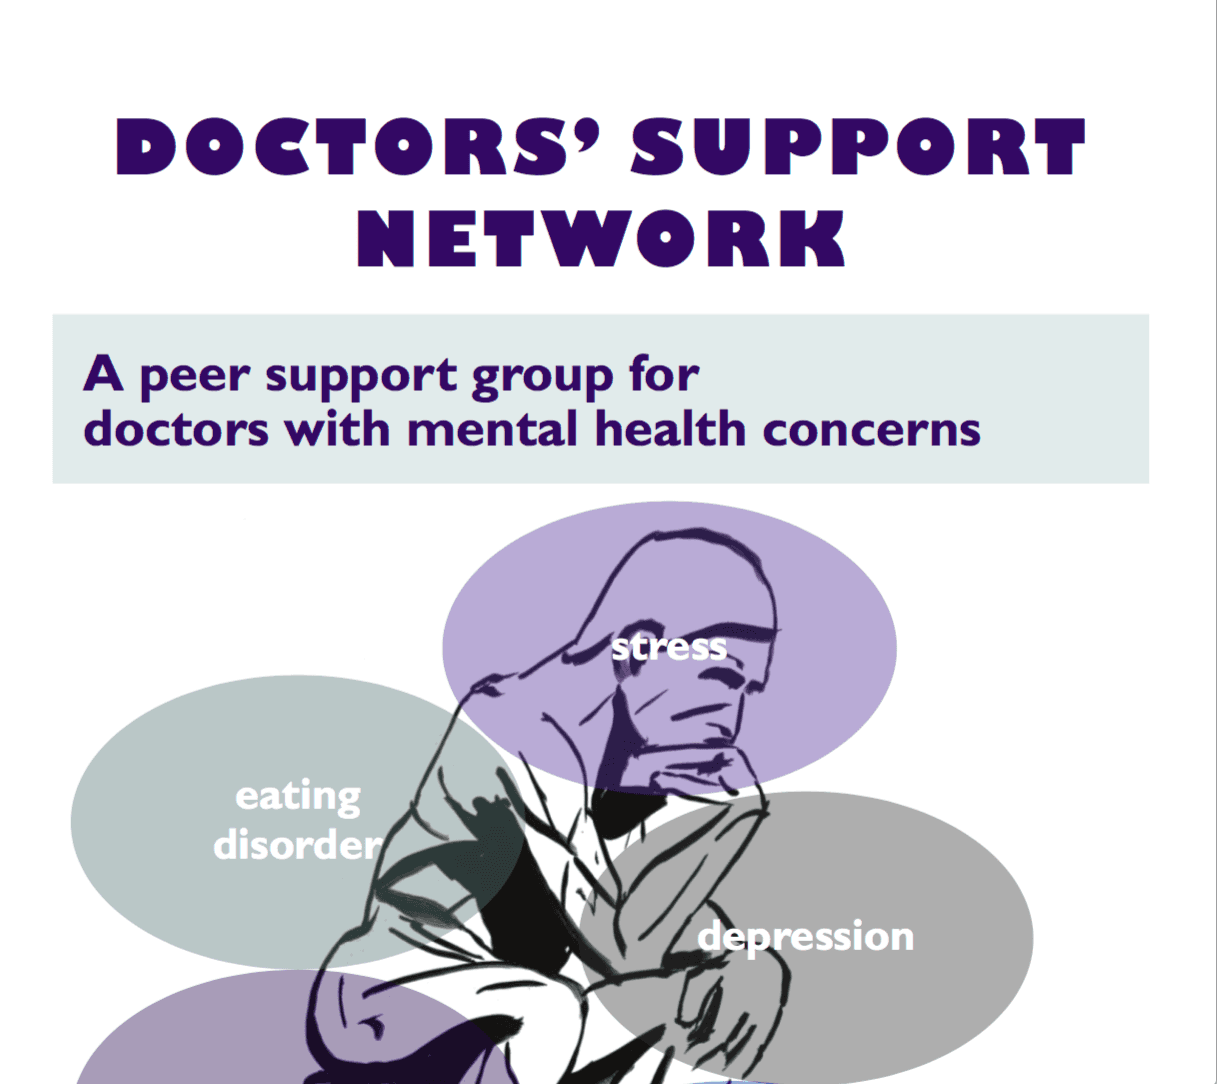 Doctors' Support Network 2016 DSN A4 poster mental health